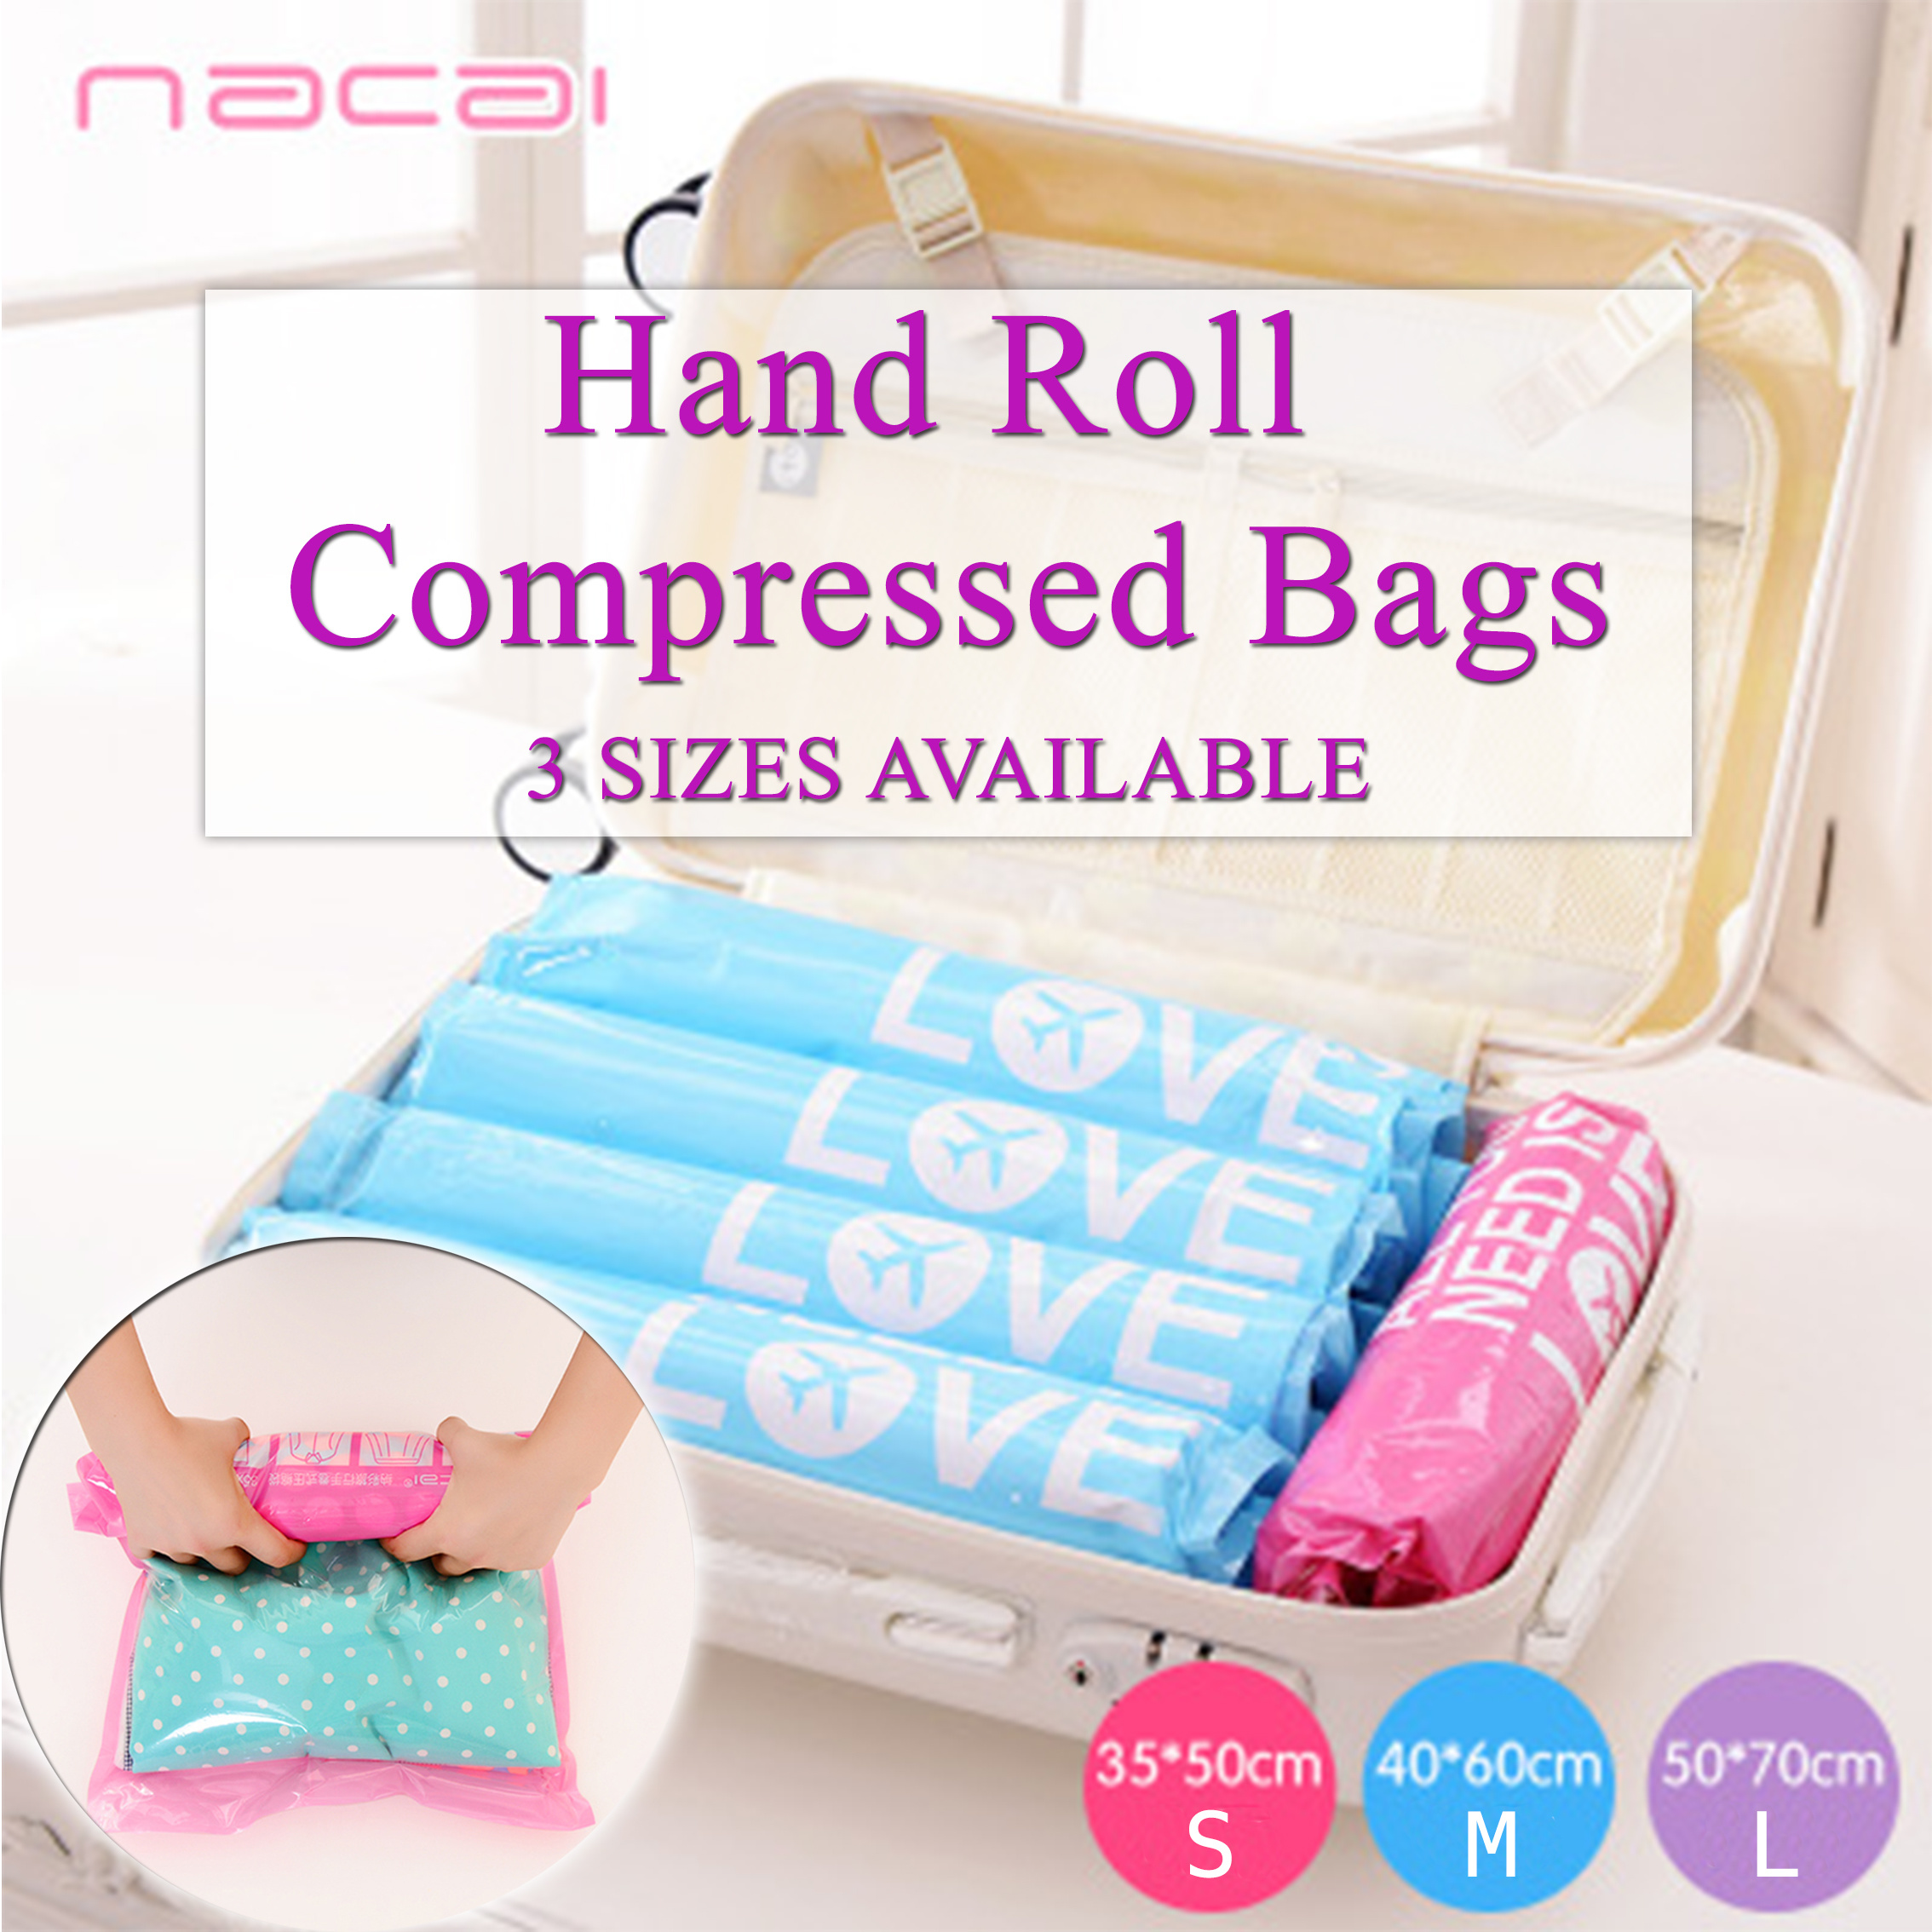 888a1b5210a Show All Item Images. close. fit to viewer. prev next. [Premium Quality]  Muti Compression Bag☆Easily without vacuum!